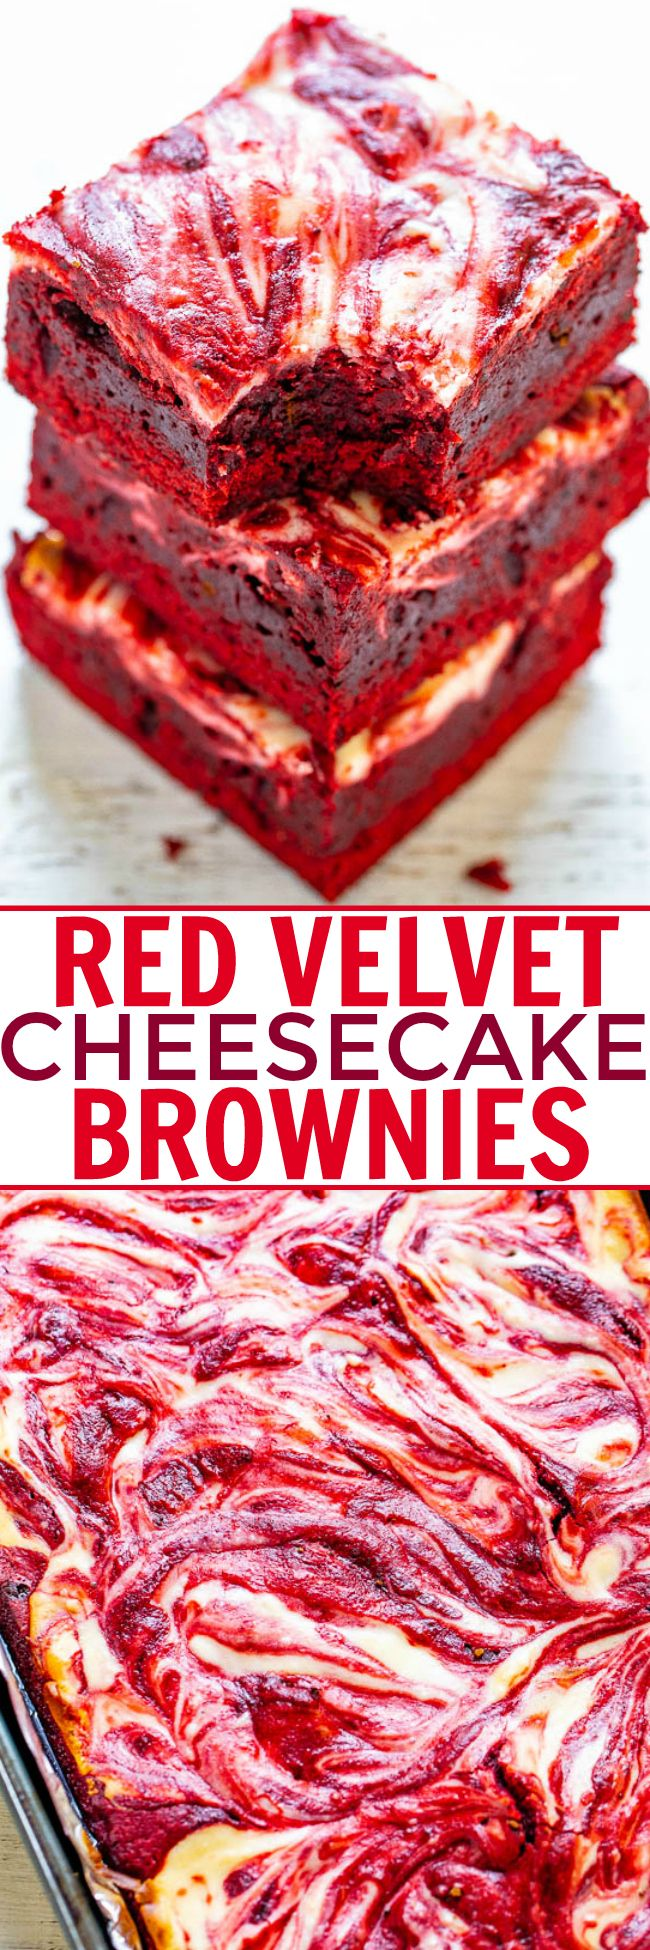 Red Velvet Cheesecake Brownies – Rich, decadent, red velvet brownies topped with tangy cream cheese swirls!! PERFECT for Valentine's Day, the Christmas season, or anytime you're craving red velvet! EASIER than you think to make!!